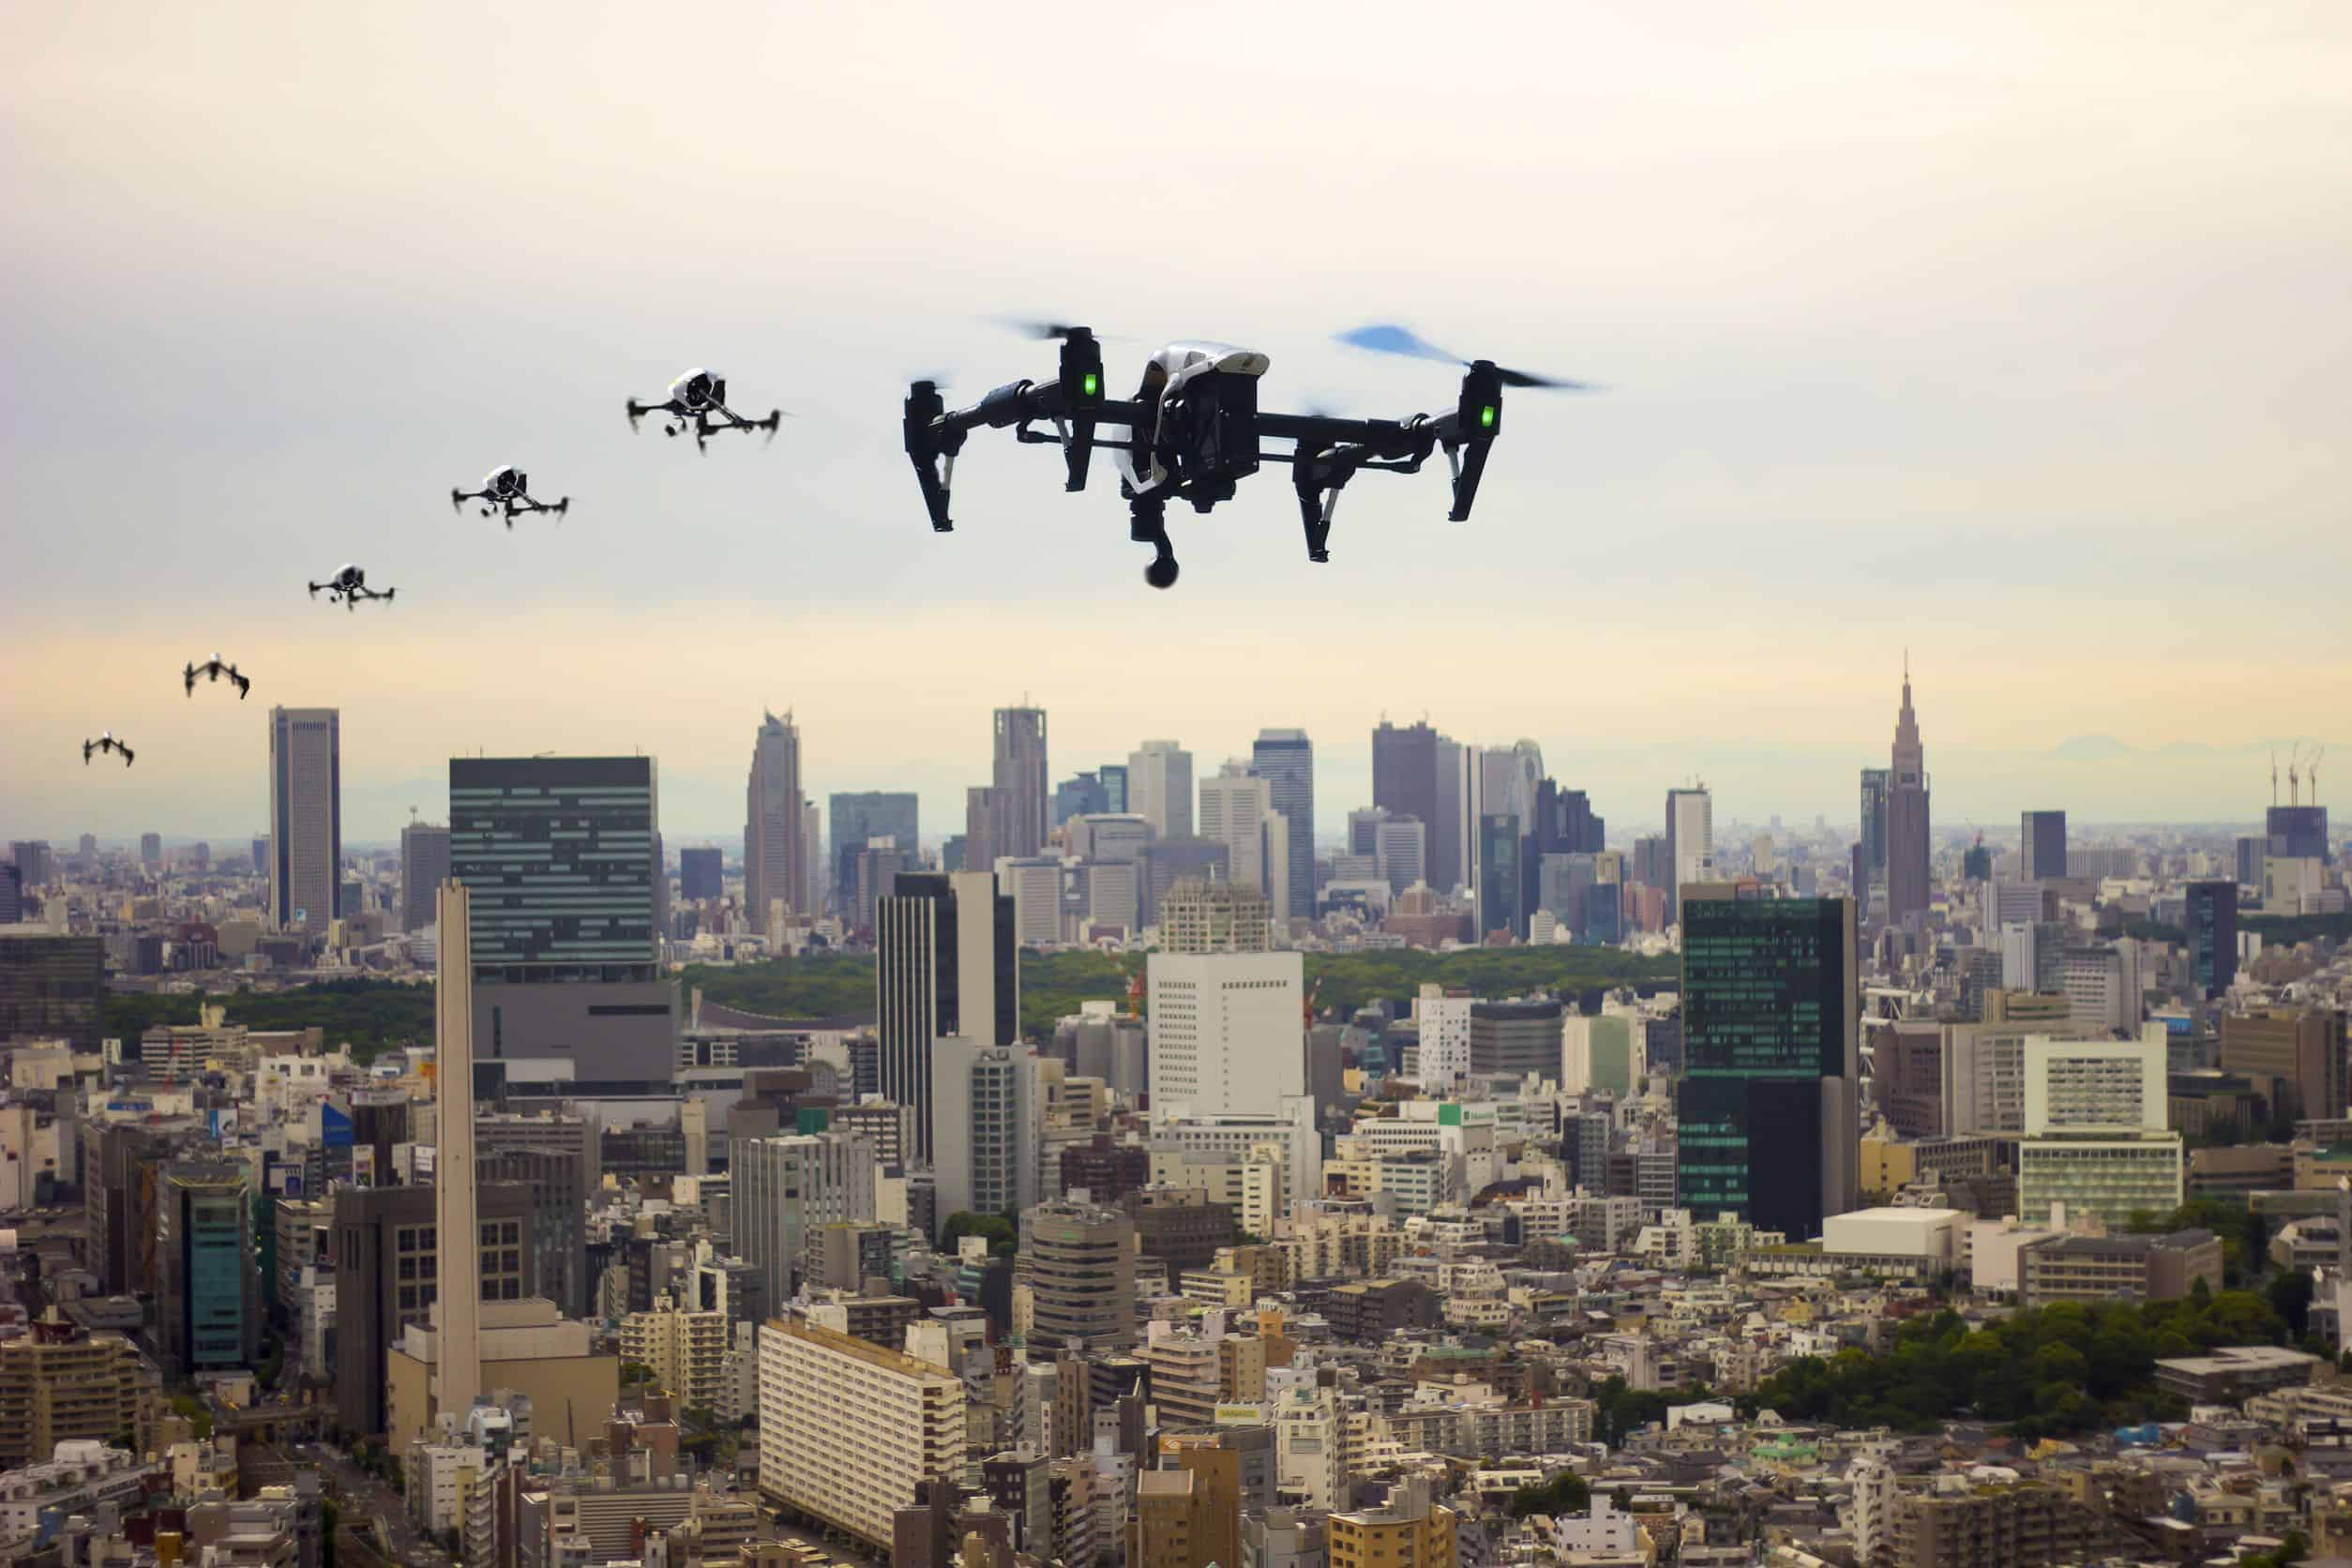 Can Fly a Drone over Private Property